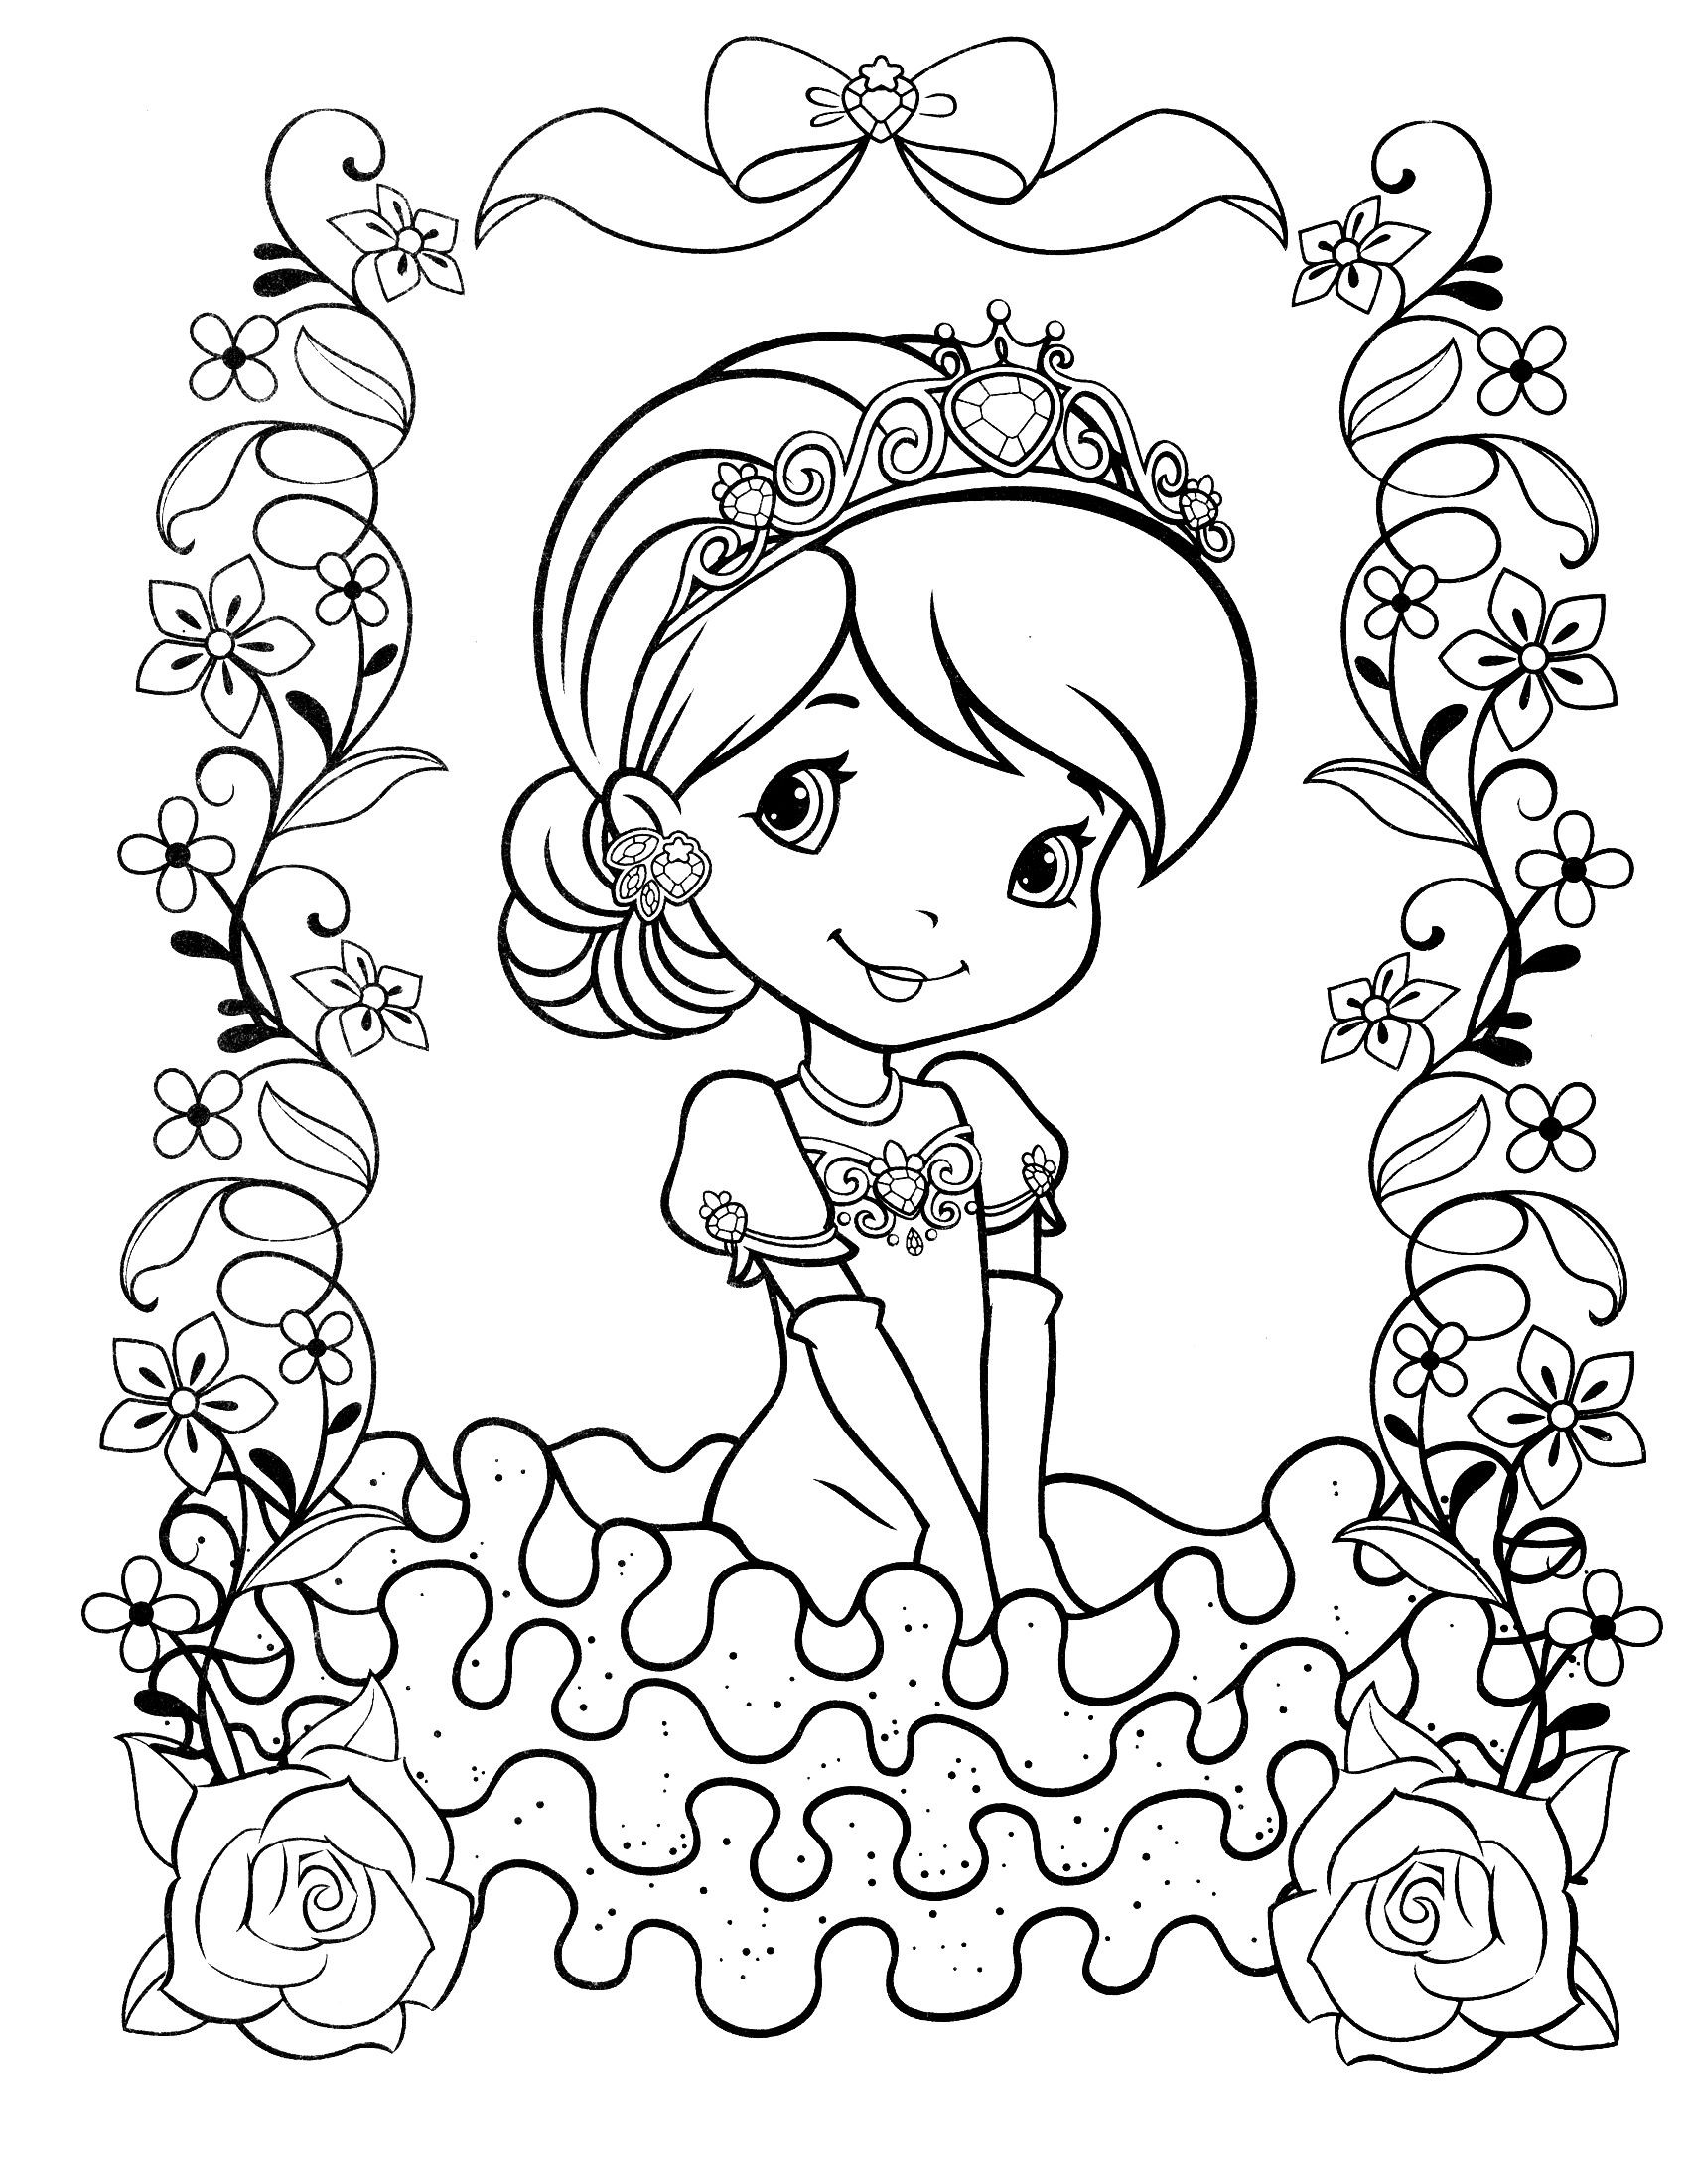 Coloring Sheets For Girls Strawberry Shortcake  strawberry shortcake coloring page